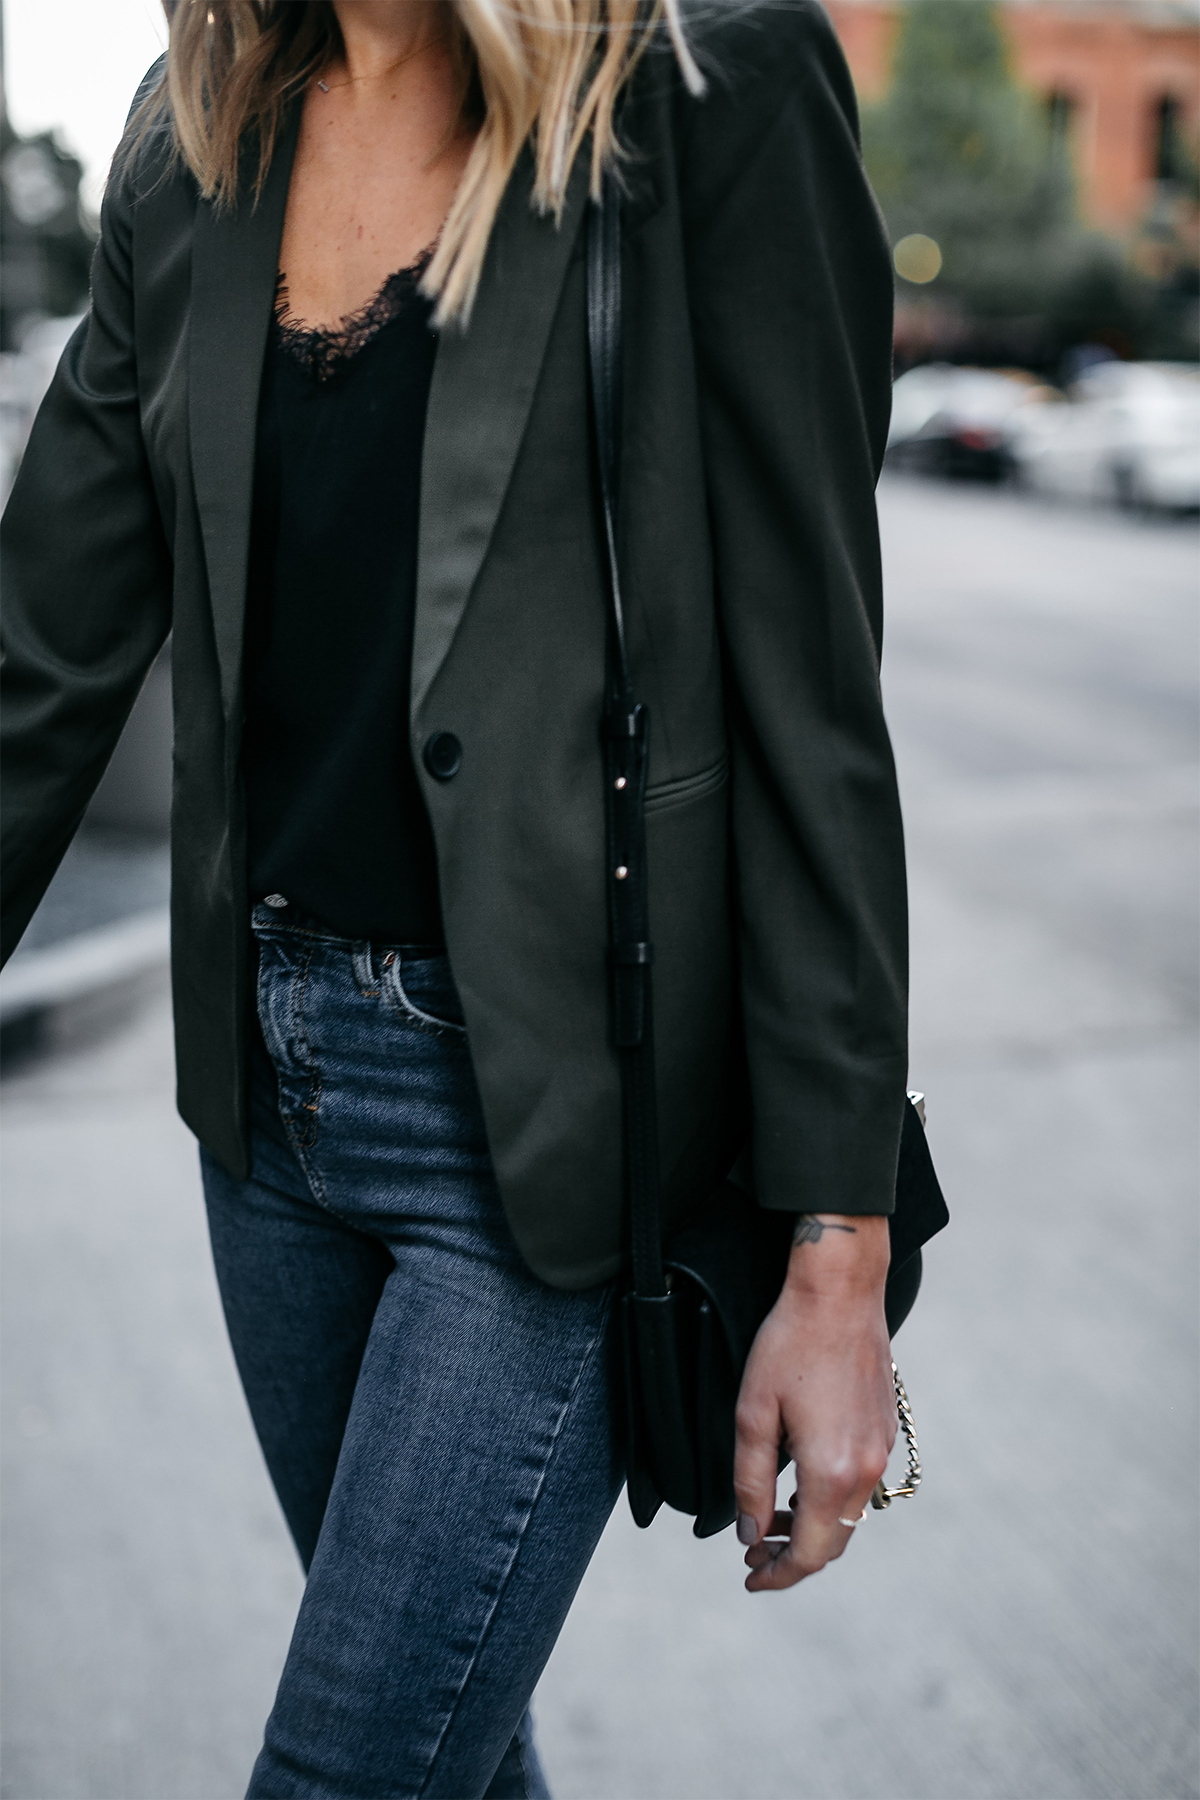 Everlane Olive Green Blazer Black Cami Denim Jeans Fashion Jackson Dallas Blogger Fashion Blogger Street Style